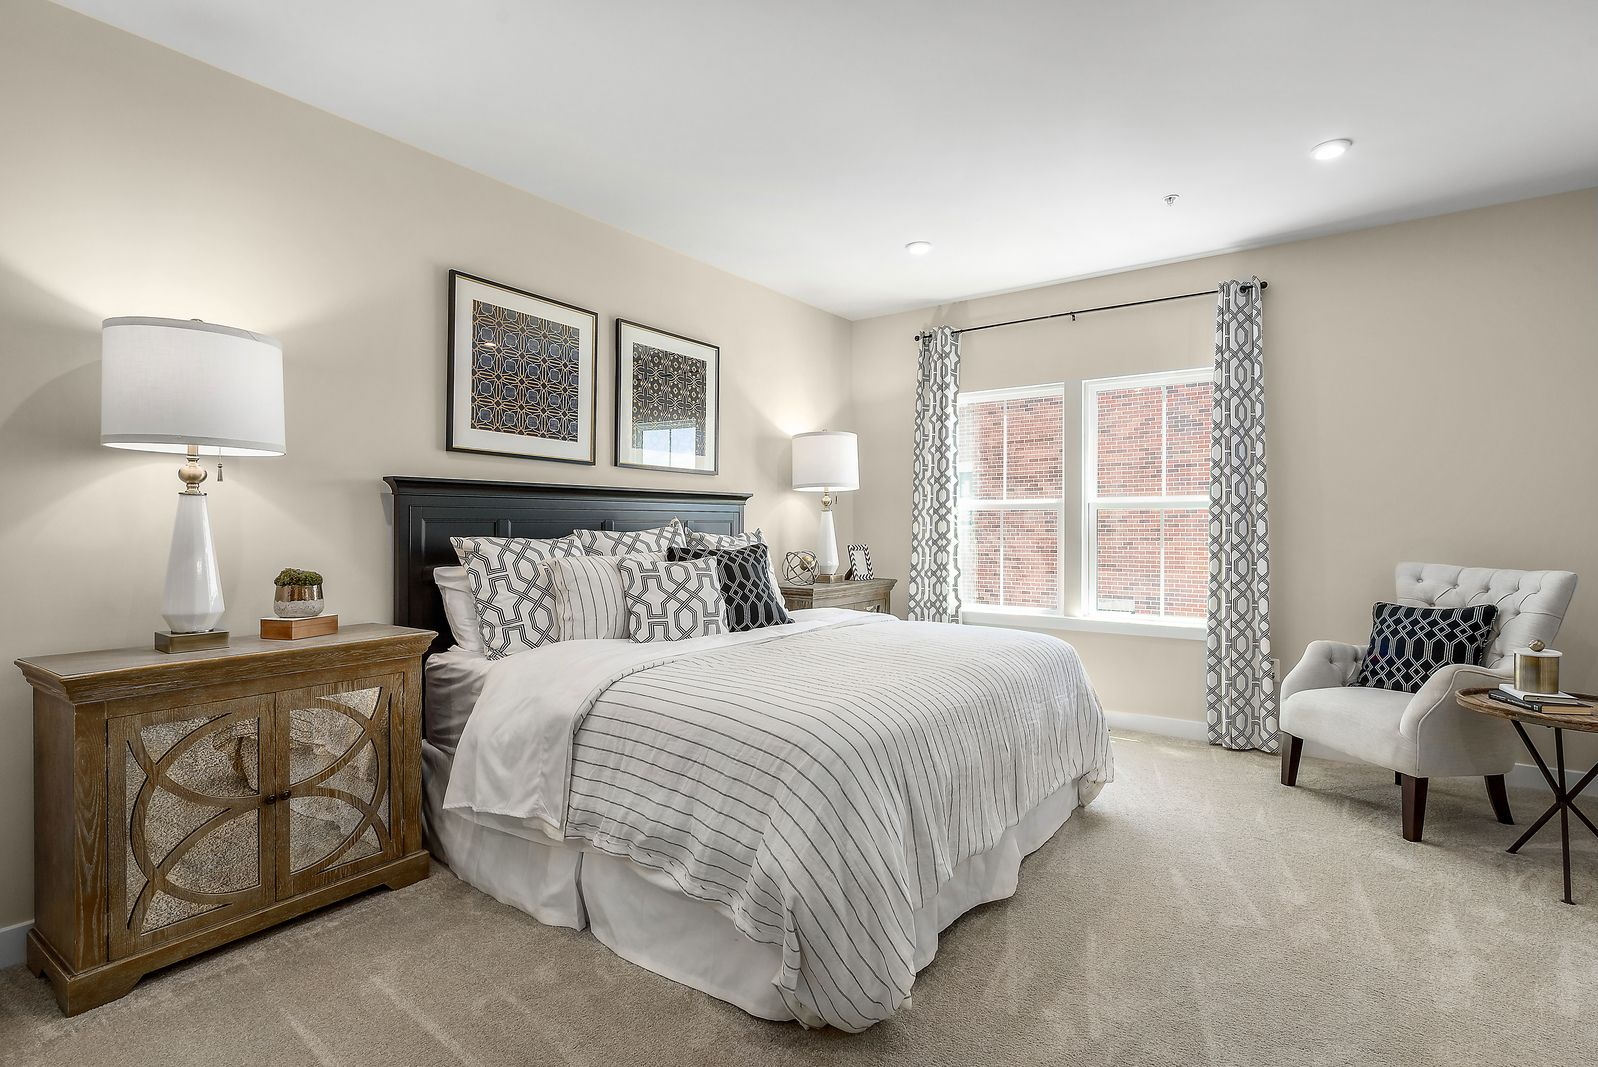 Bedroom featured in the Strauss By Ryan Homes in Philadelphia, NJ